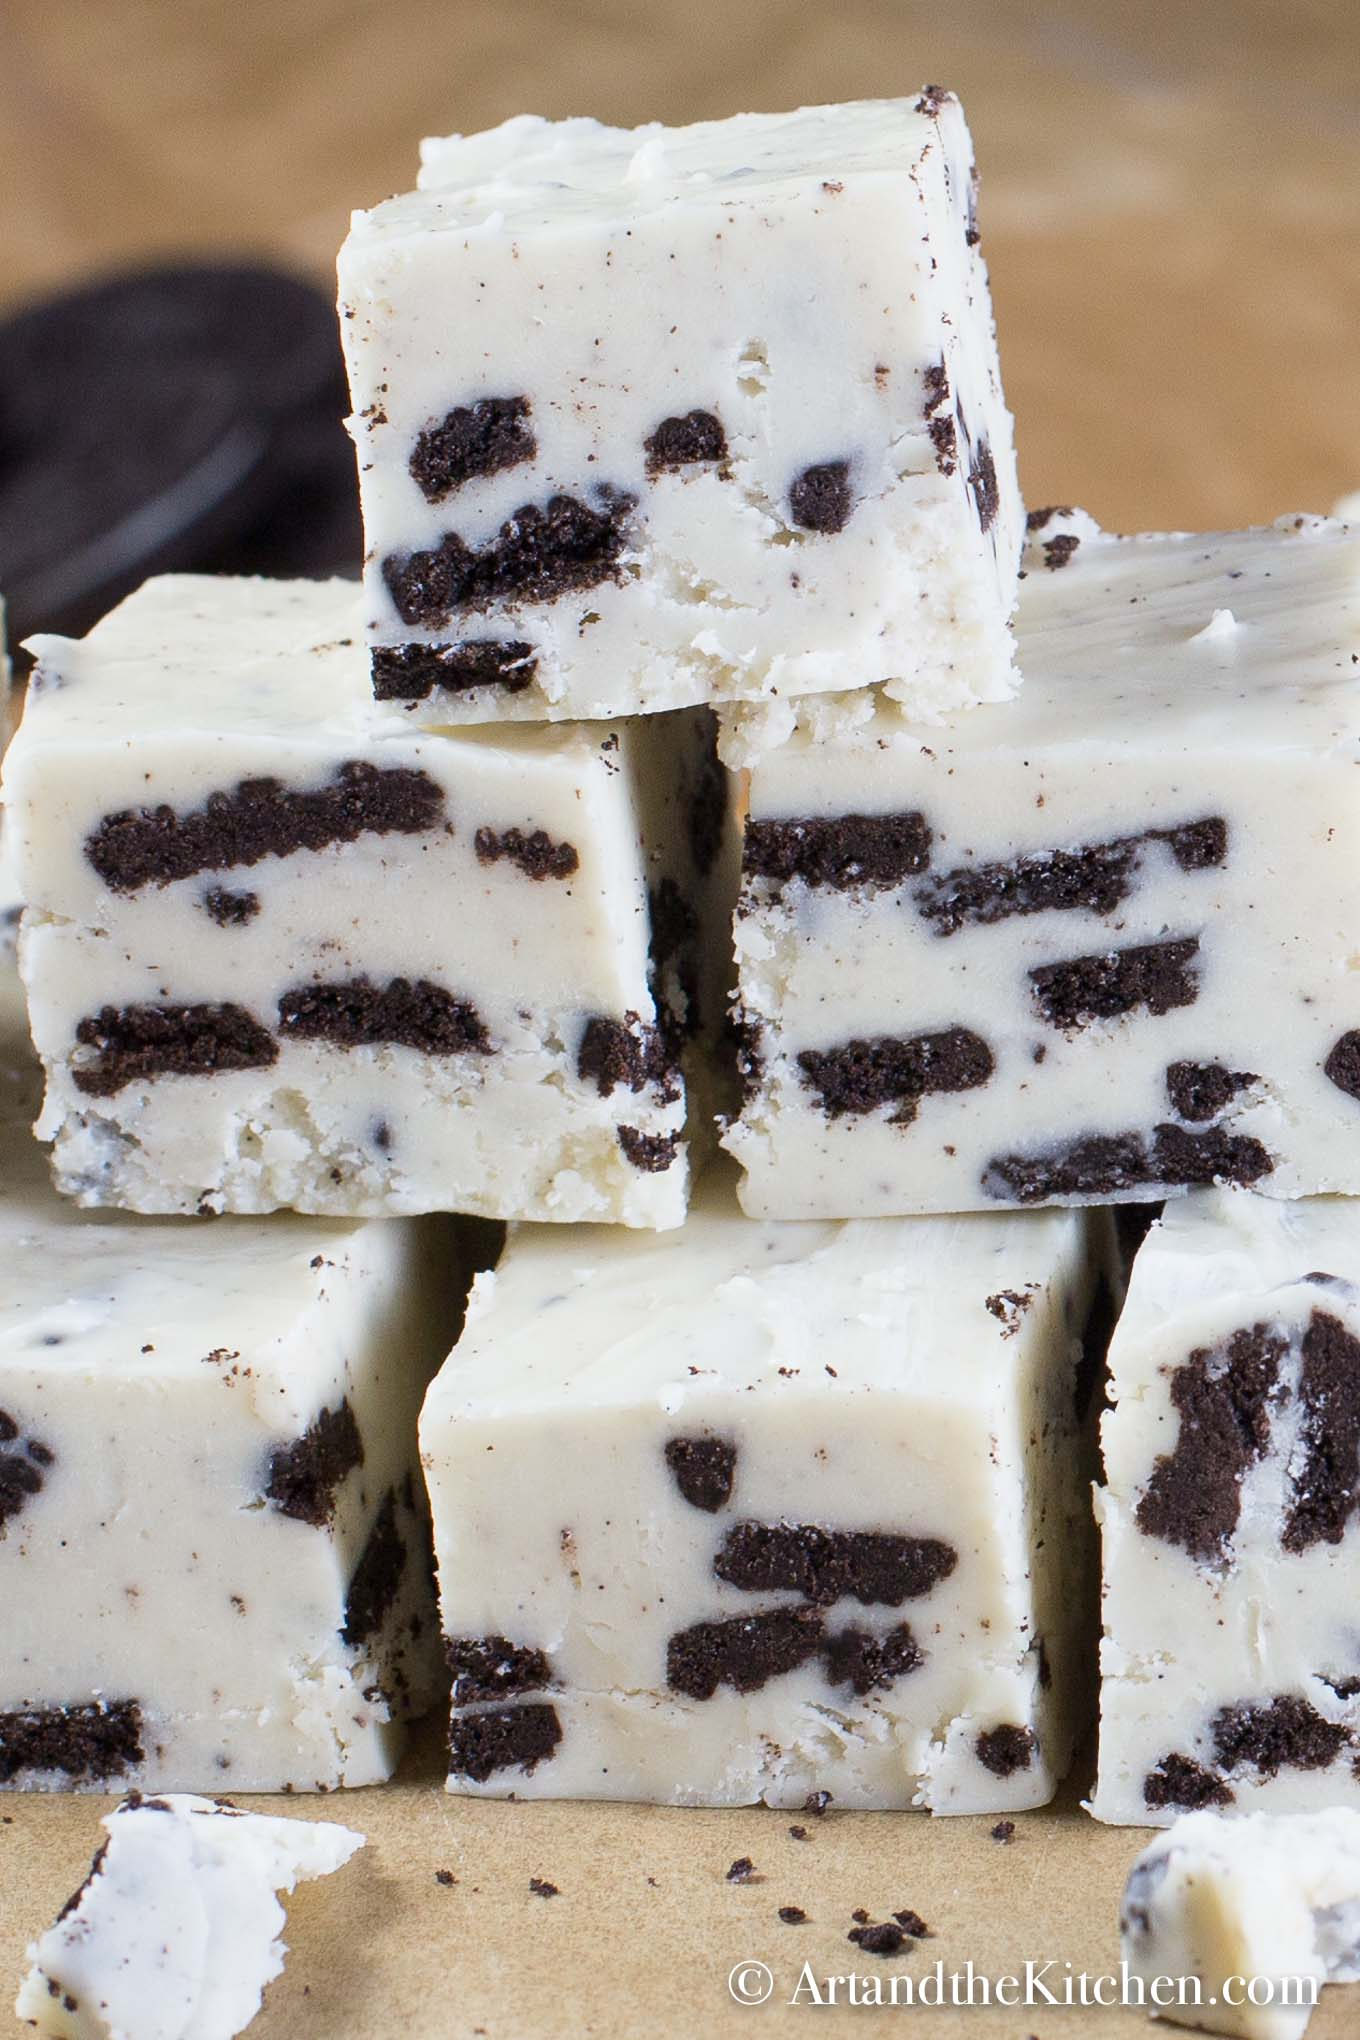 Stacked cubes of fudge made with white chocolate and Oreo cookie pieces.